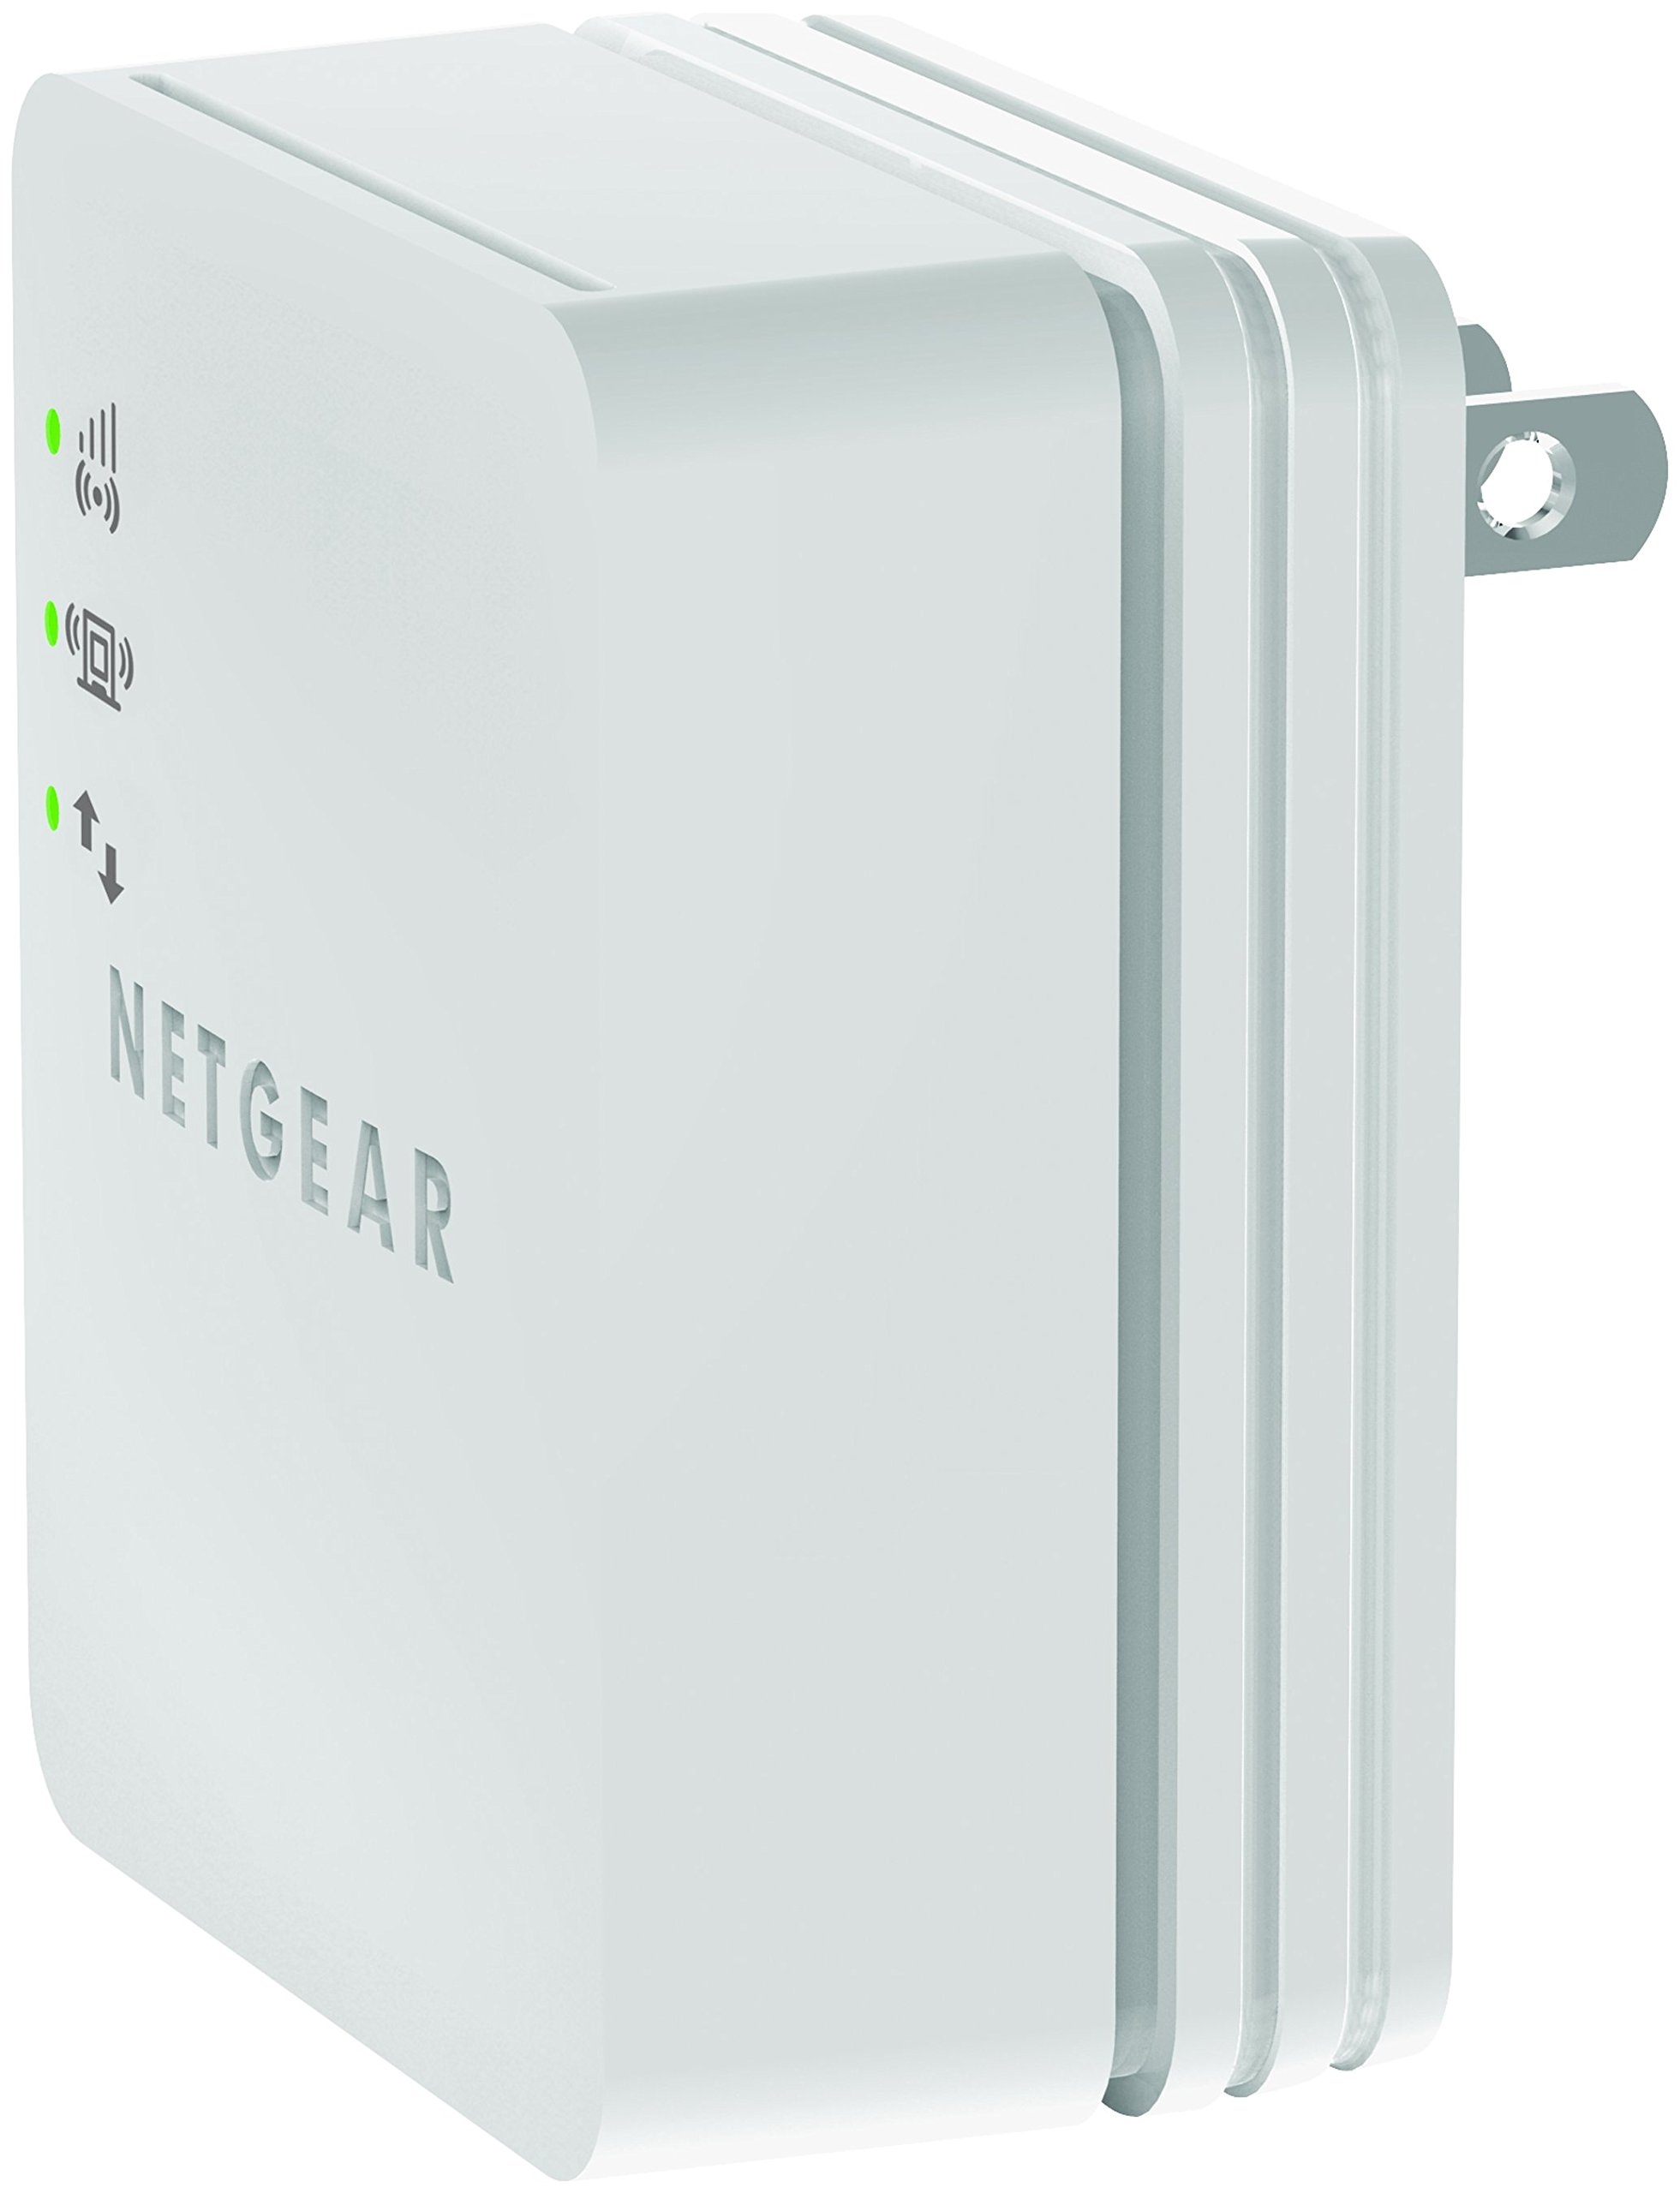 Booster Plug Install Guide: Wall Plug Wifi Long Range Extender WN1000RP Wireless